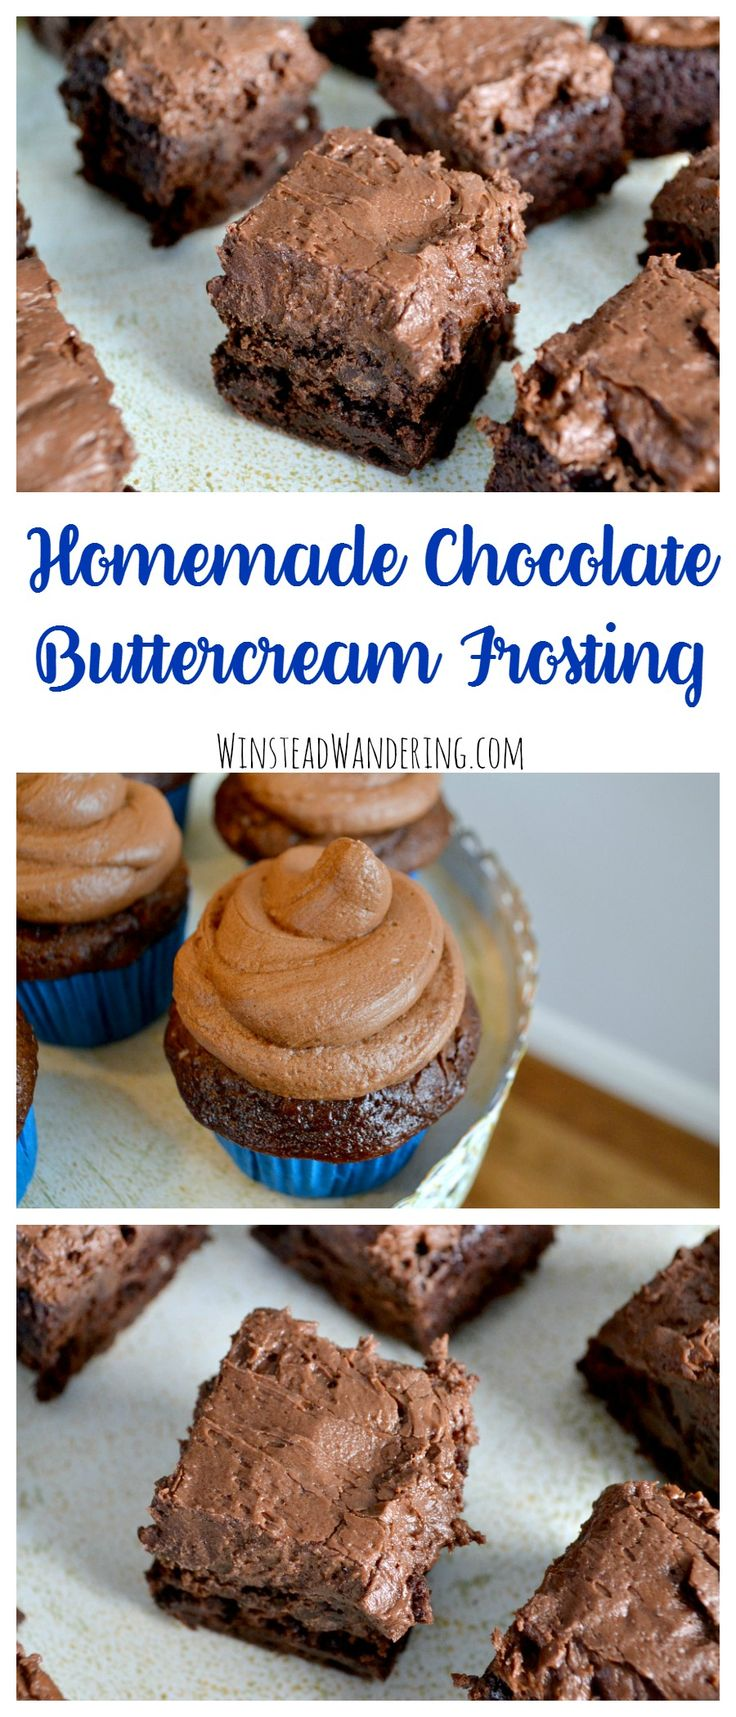 Put the store-bought stuff down; homemade chocolate buttercream frosting is surprisingly easy and tastes 100 times better.